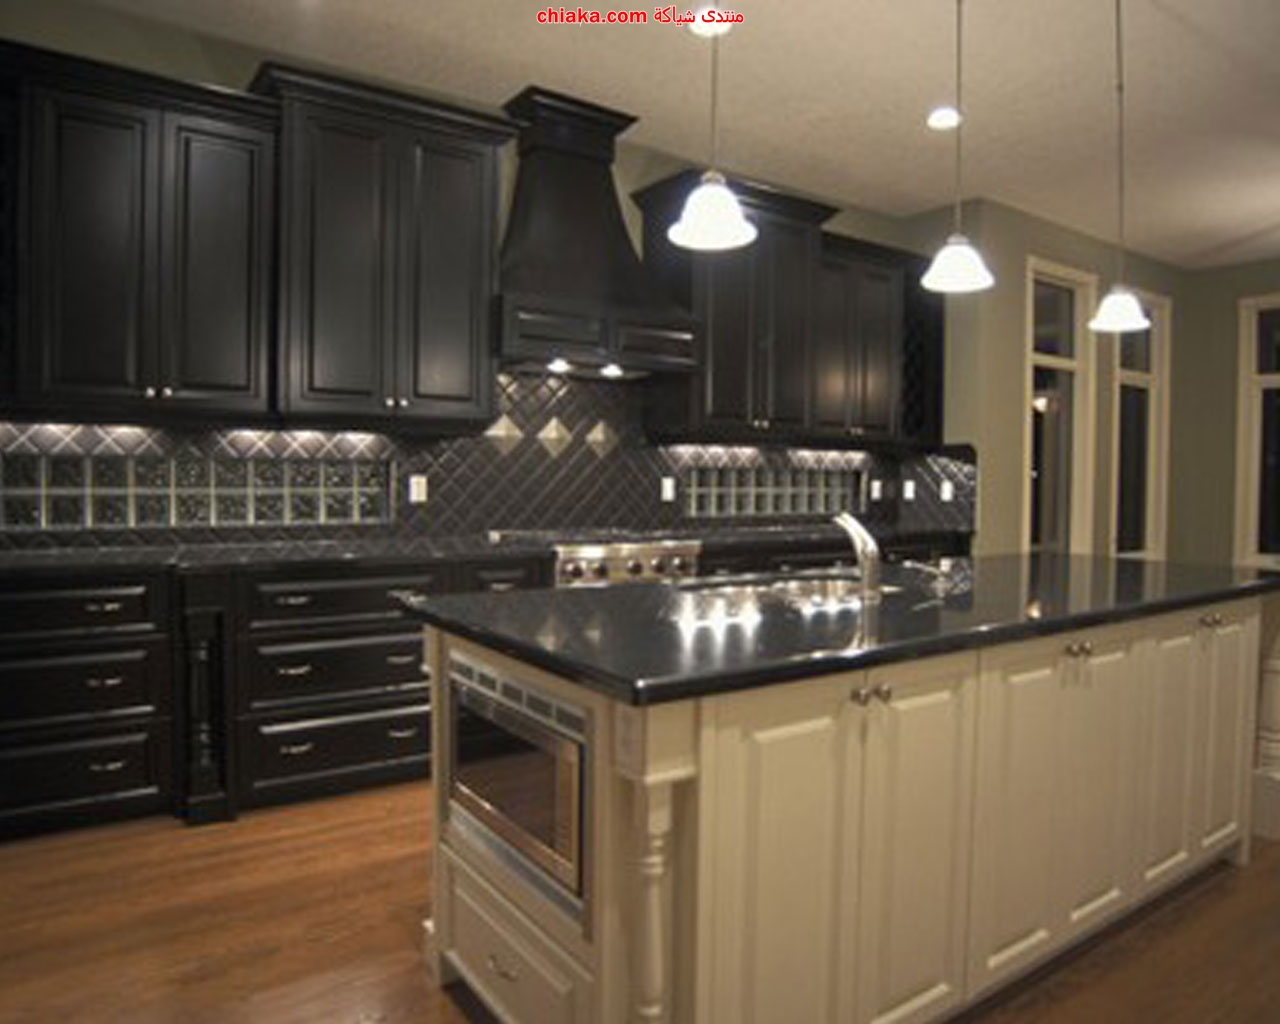 what color kitchen cabinets go with black appliances ديكورات مطابخ 2013 28235